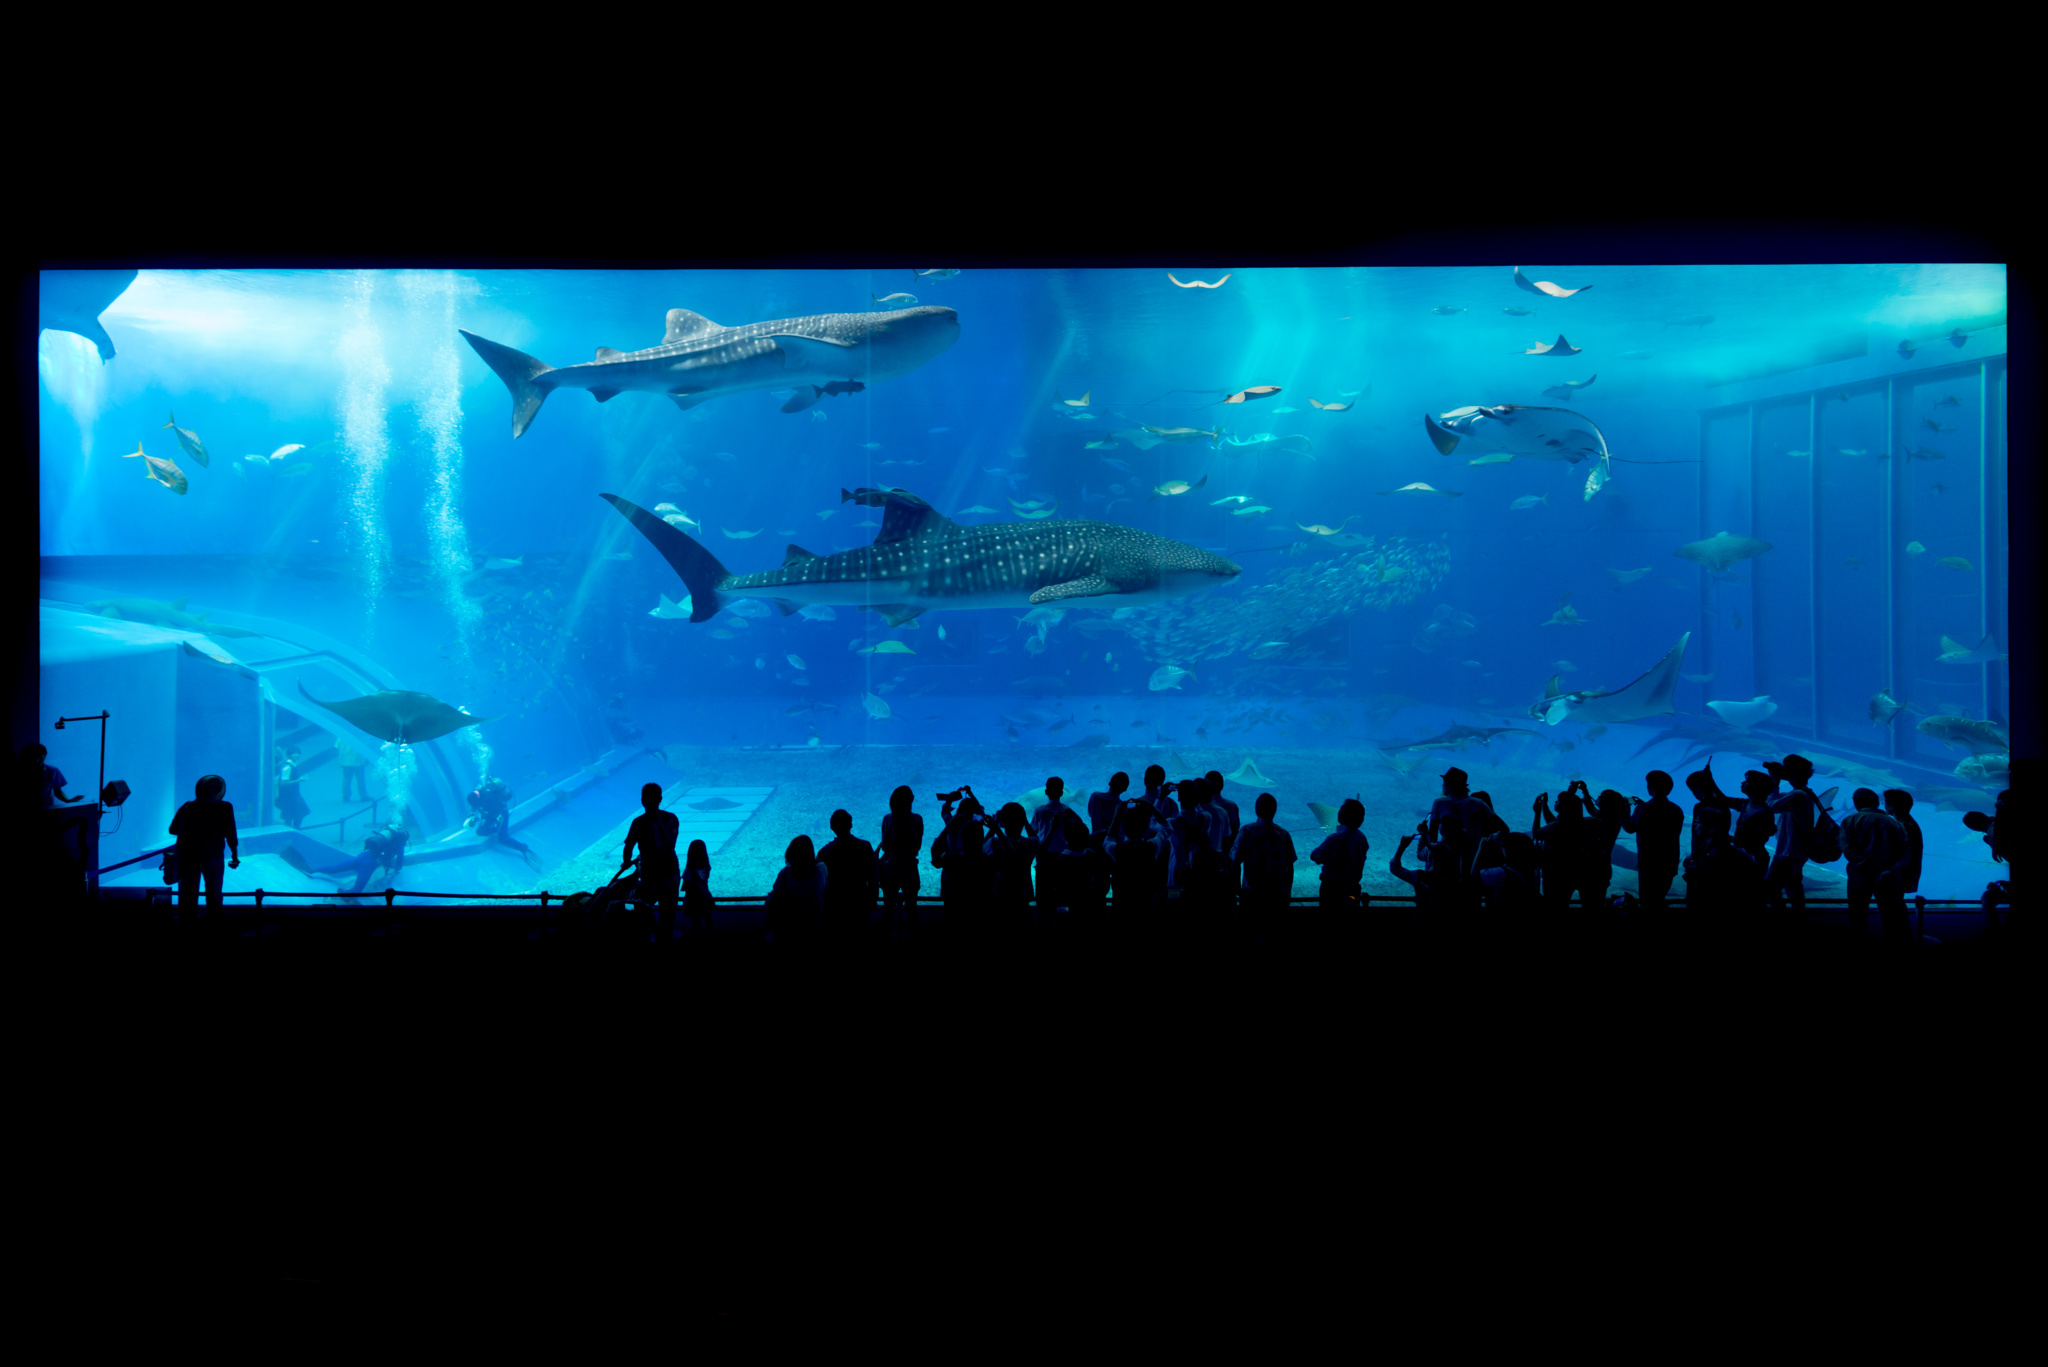 Best aquariums in the World 2017 | Churaumi Aquarium Main Tank | Wordcitiesranking.com